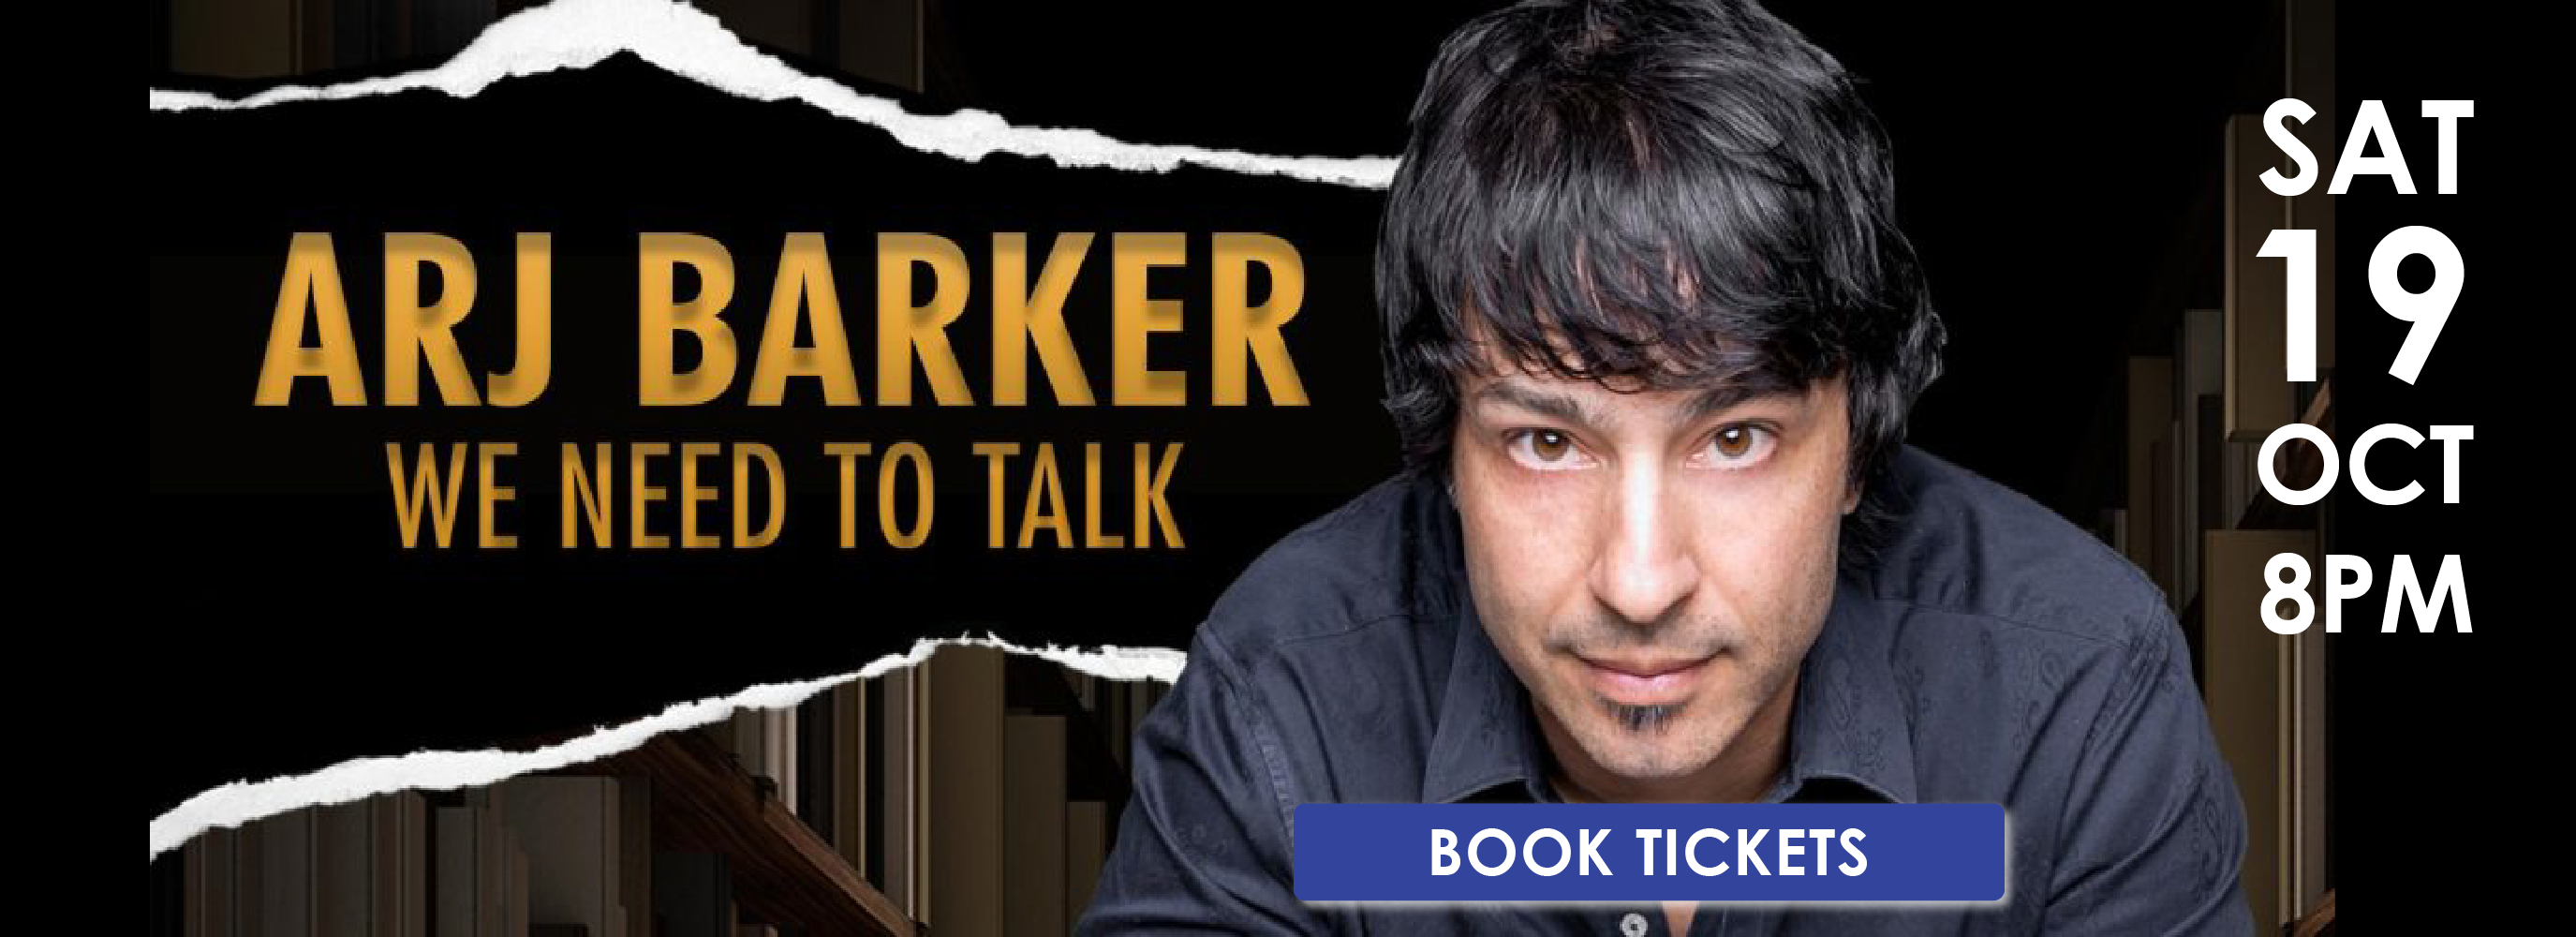 Arj Barker is coming to Cardinia Cultural Centre with his new comedy performance on Saturday 19 October at 8pm